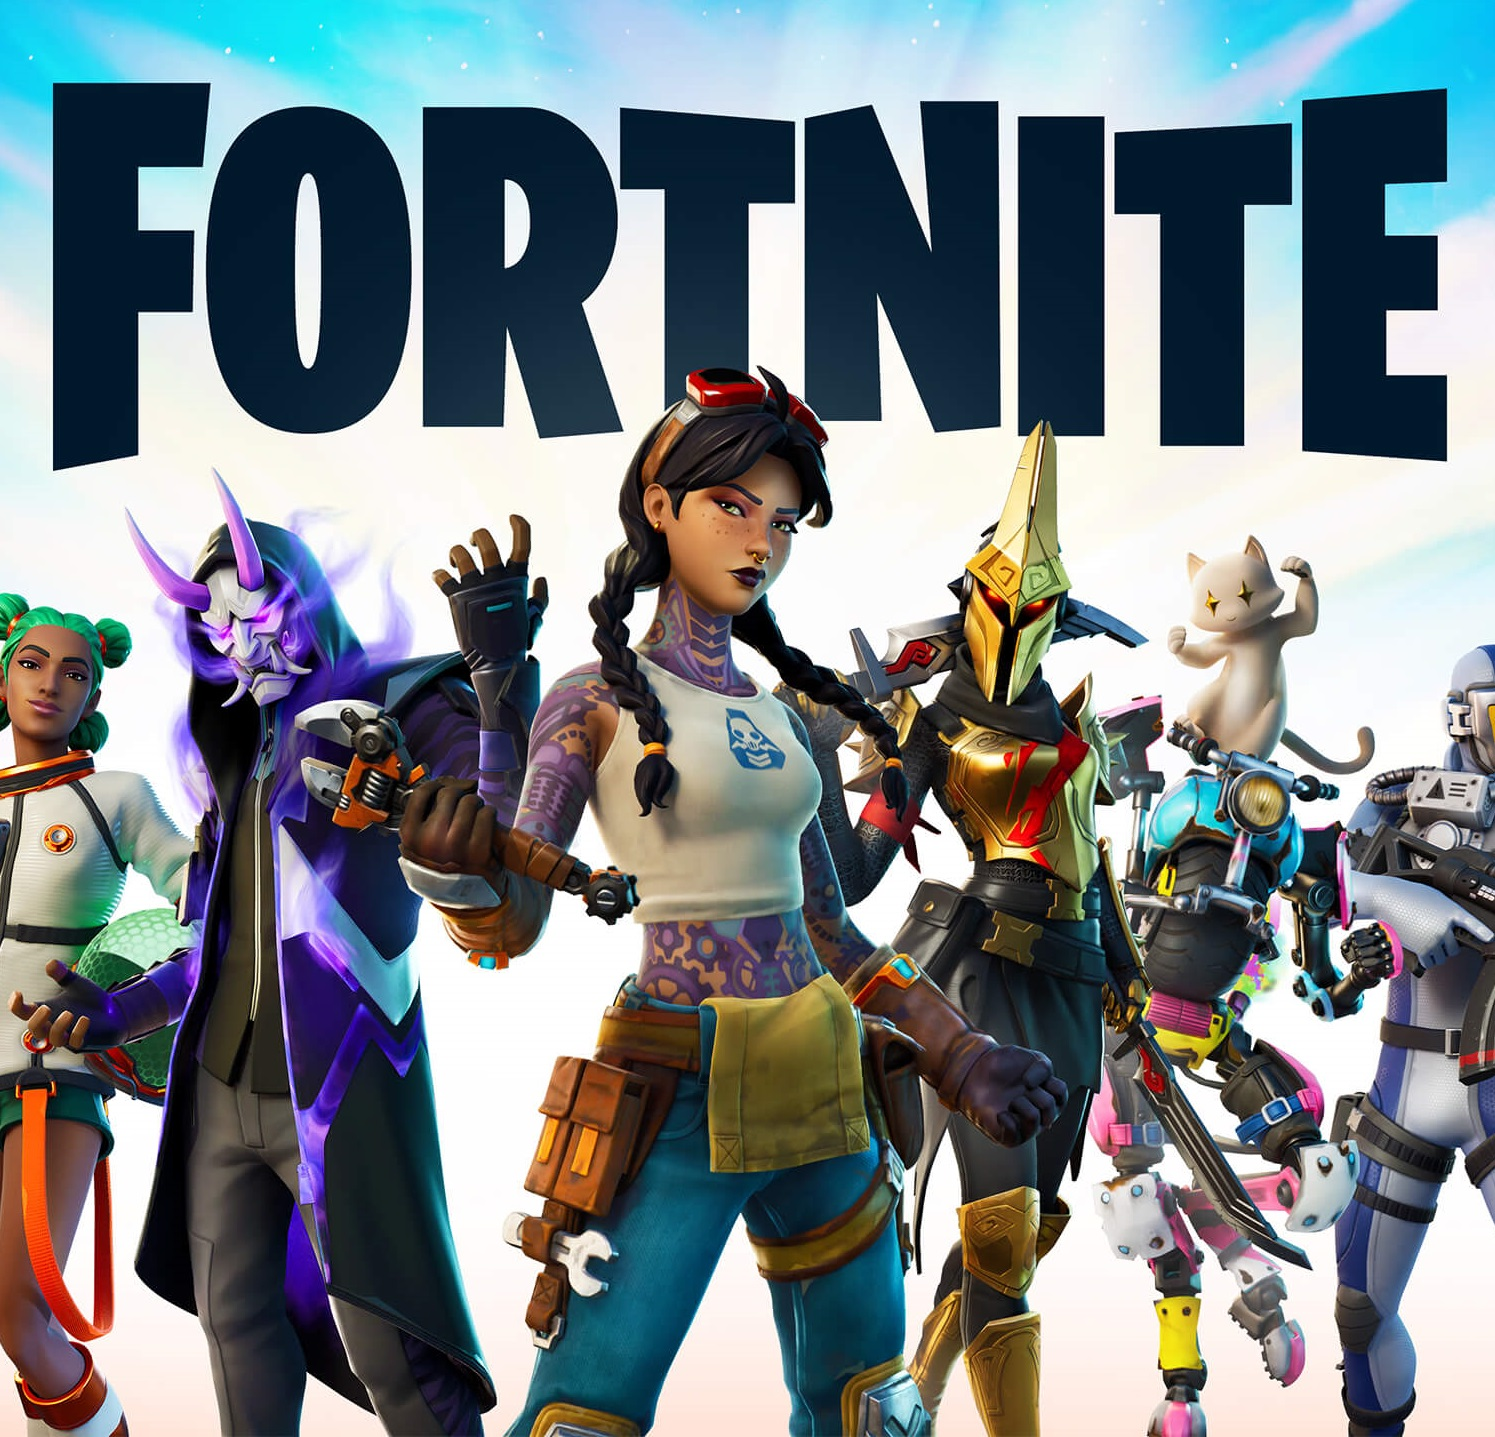 Can You Use Your Xbox Fortnite Account On Ps4 Fortnite Pc Ps4 Xbox Switch Mobile Epic Games Account With Email Access 30 100 Pvp Skins And Emotes Warranty Buy Online At Best Prices In Pakistan Daraz Pk